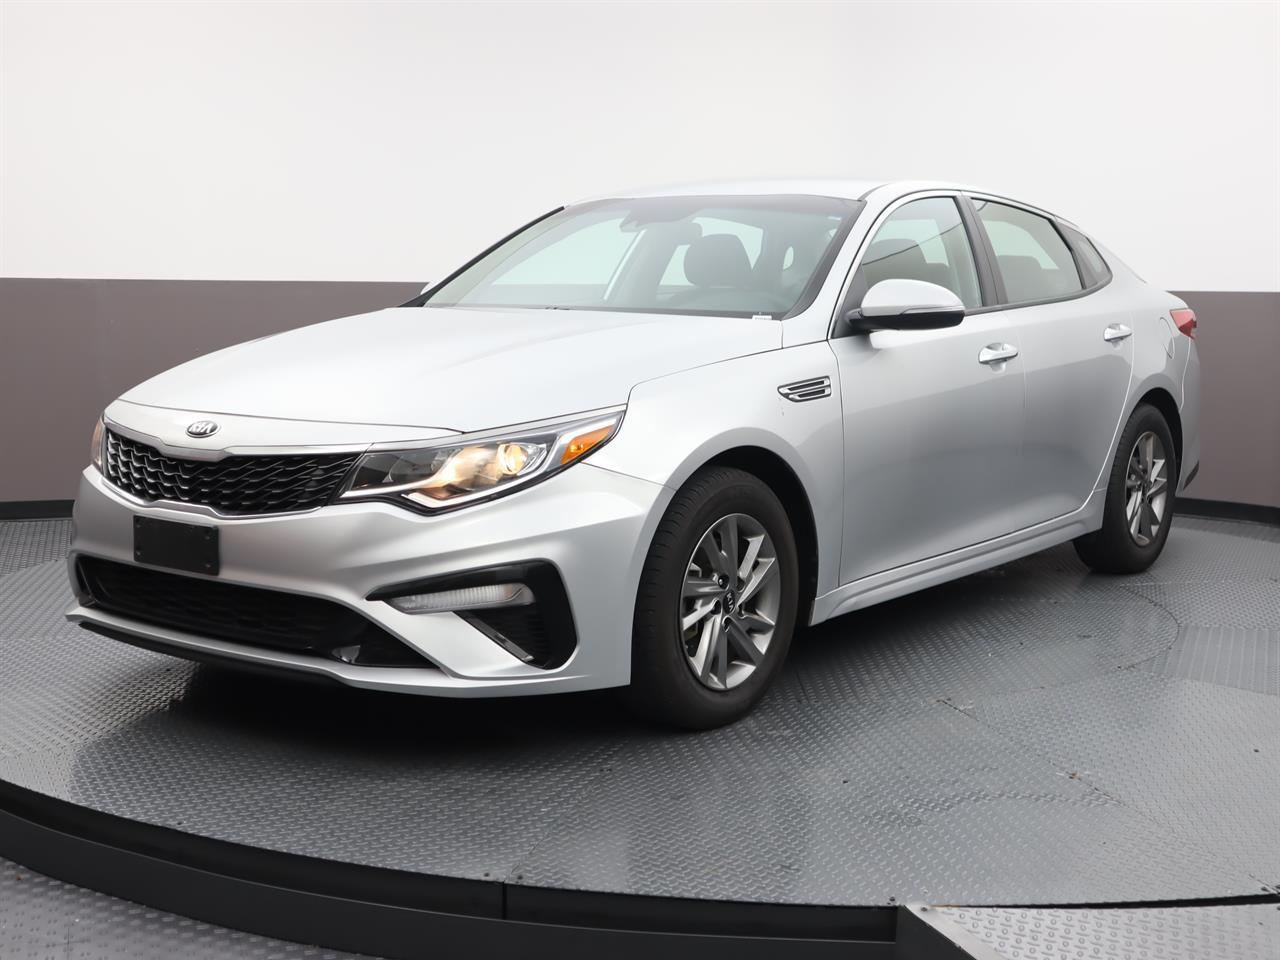 Used KIA OPTIMA 2019 MIAMI LX